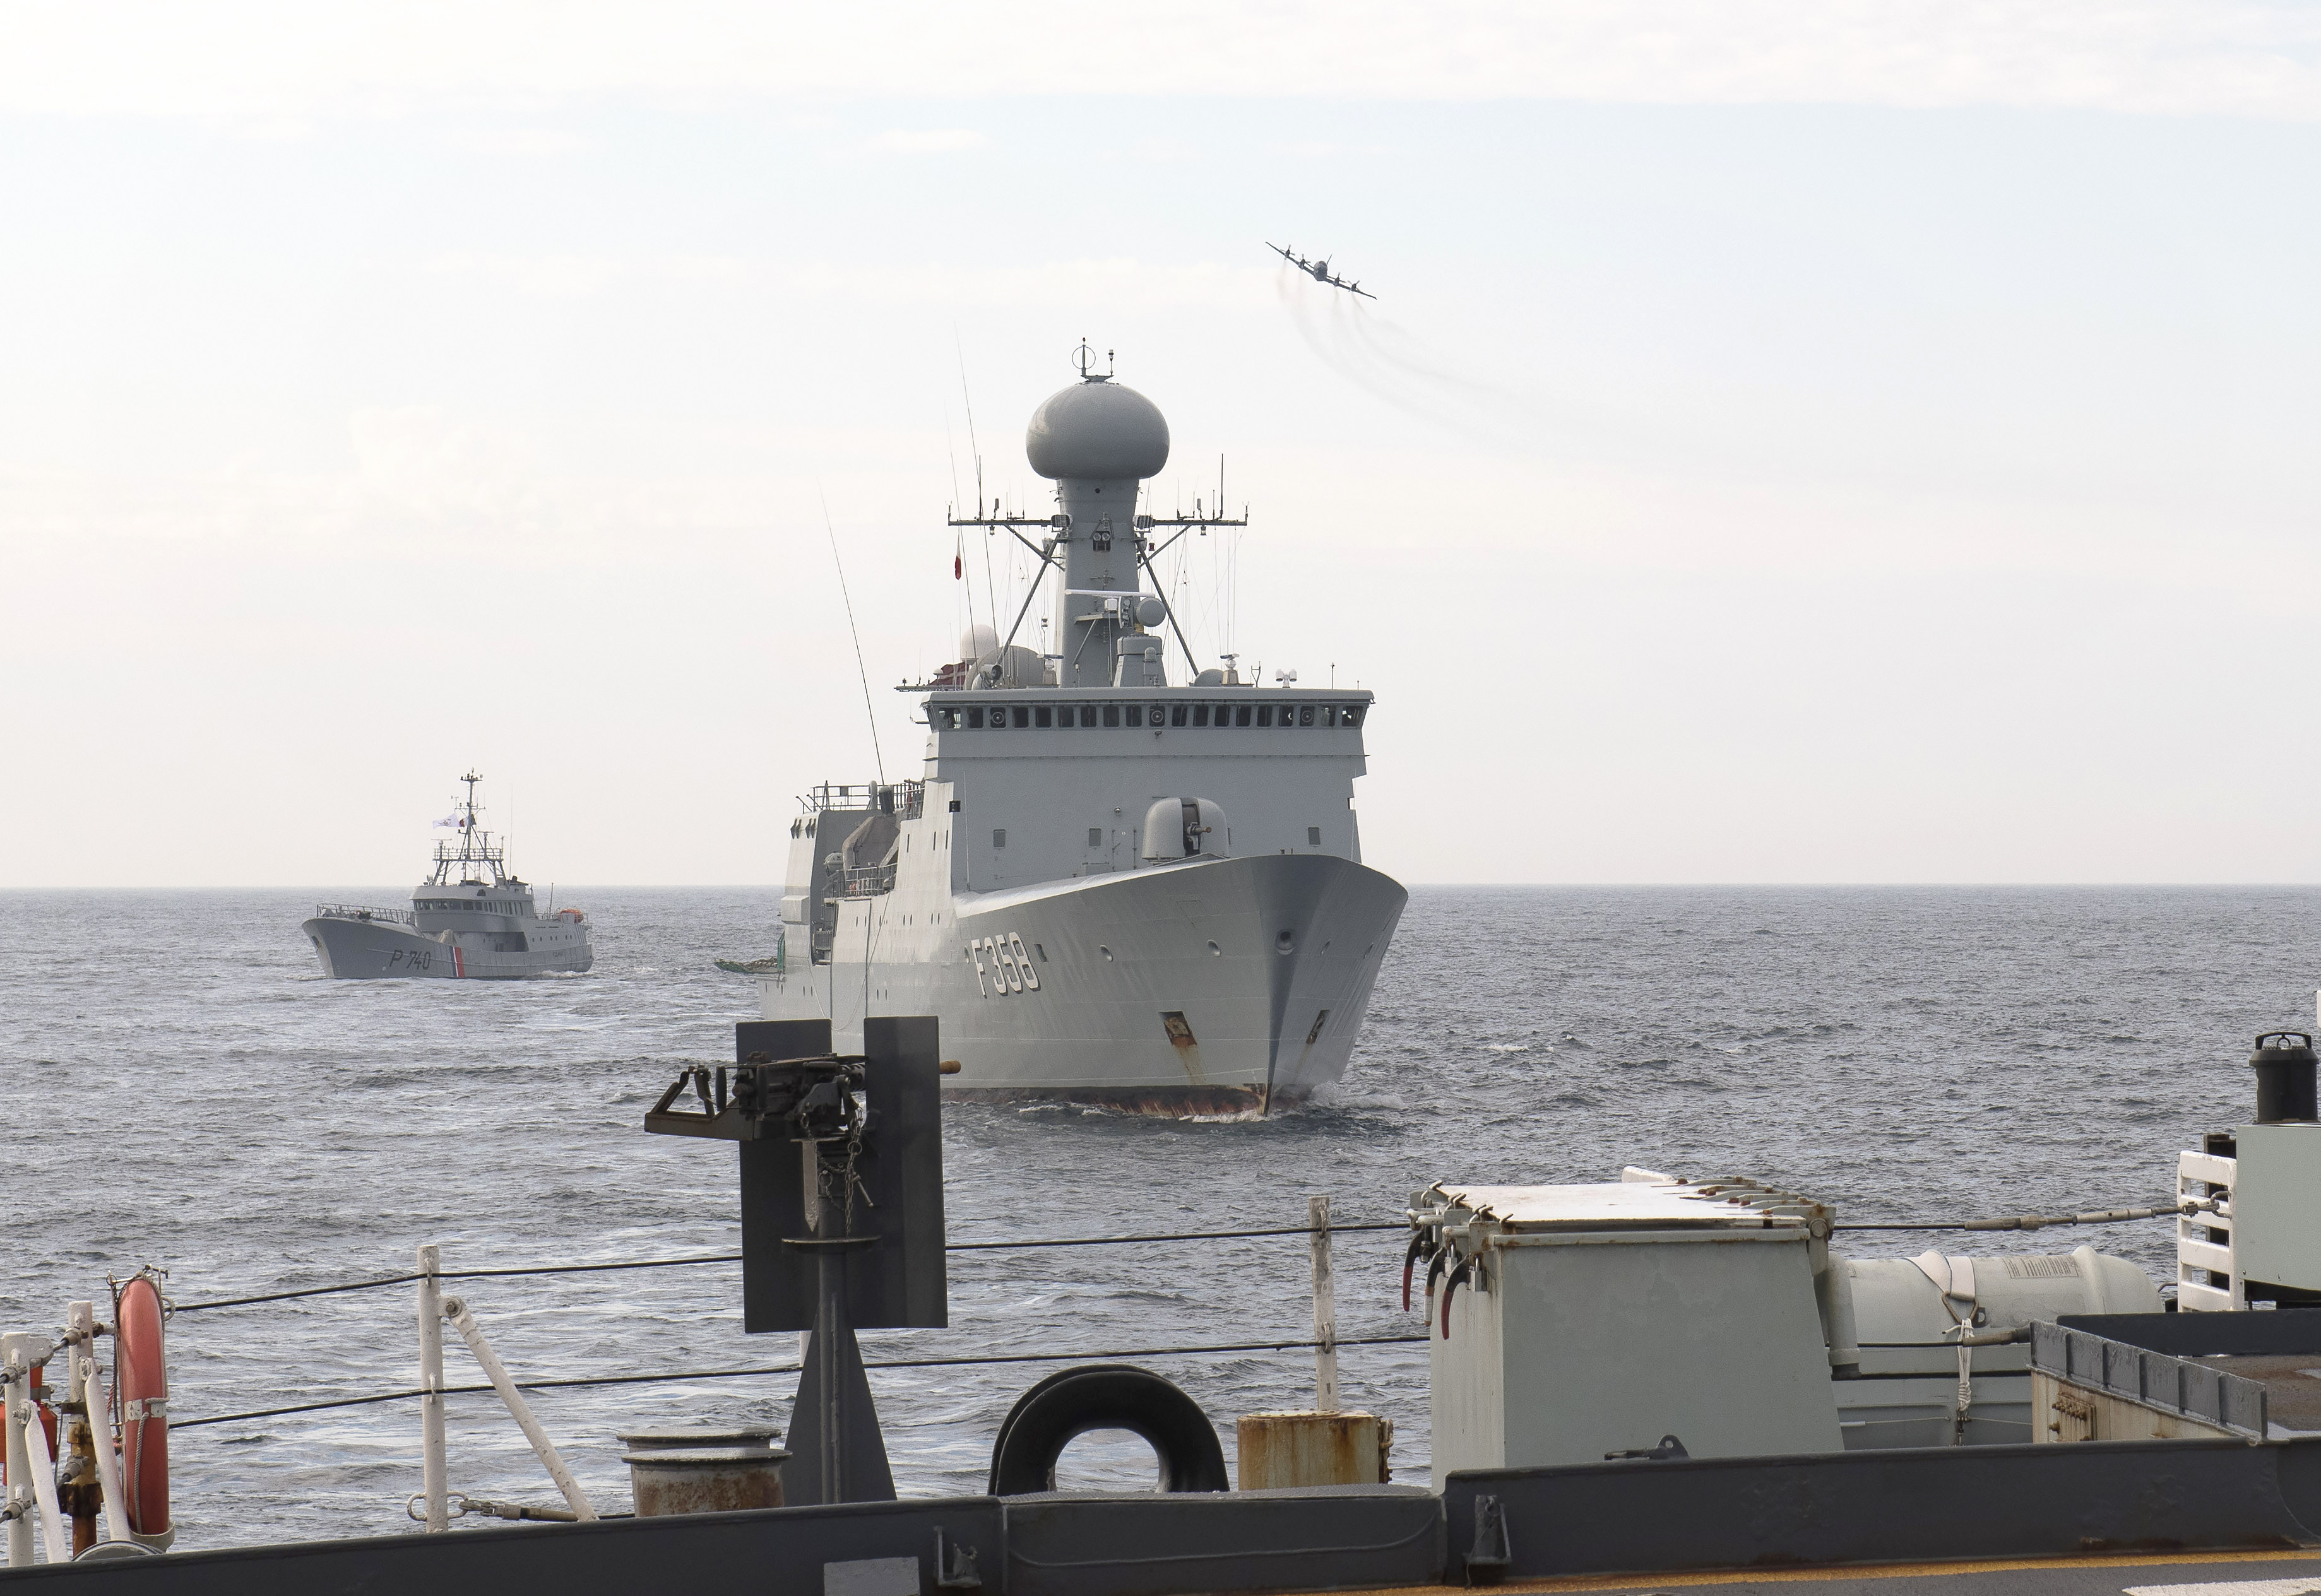 In August 2020, during Operation Nanook, an RCAF CP-140 Aurora aircraft approaches French coastal patrol vessel Fulmar (rear), ocean patrol vessel Her Danish Majesty's Ship Thetis, and Canadian Halifax-class frigate HMCS Ville de Québec (foreground). PHOTO: Op Nanook